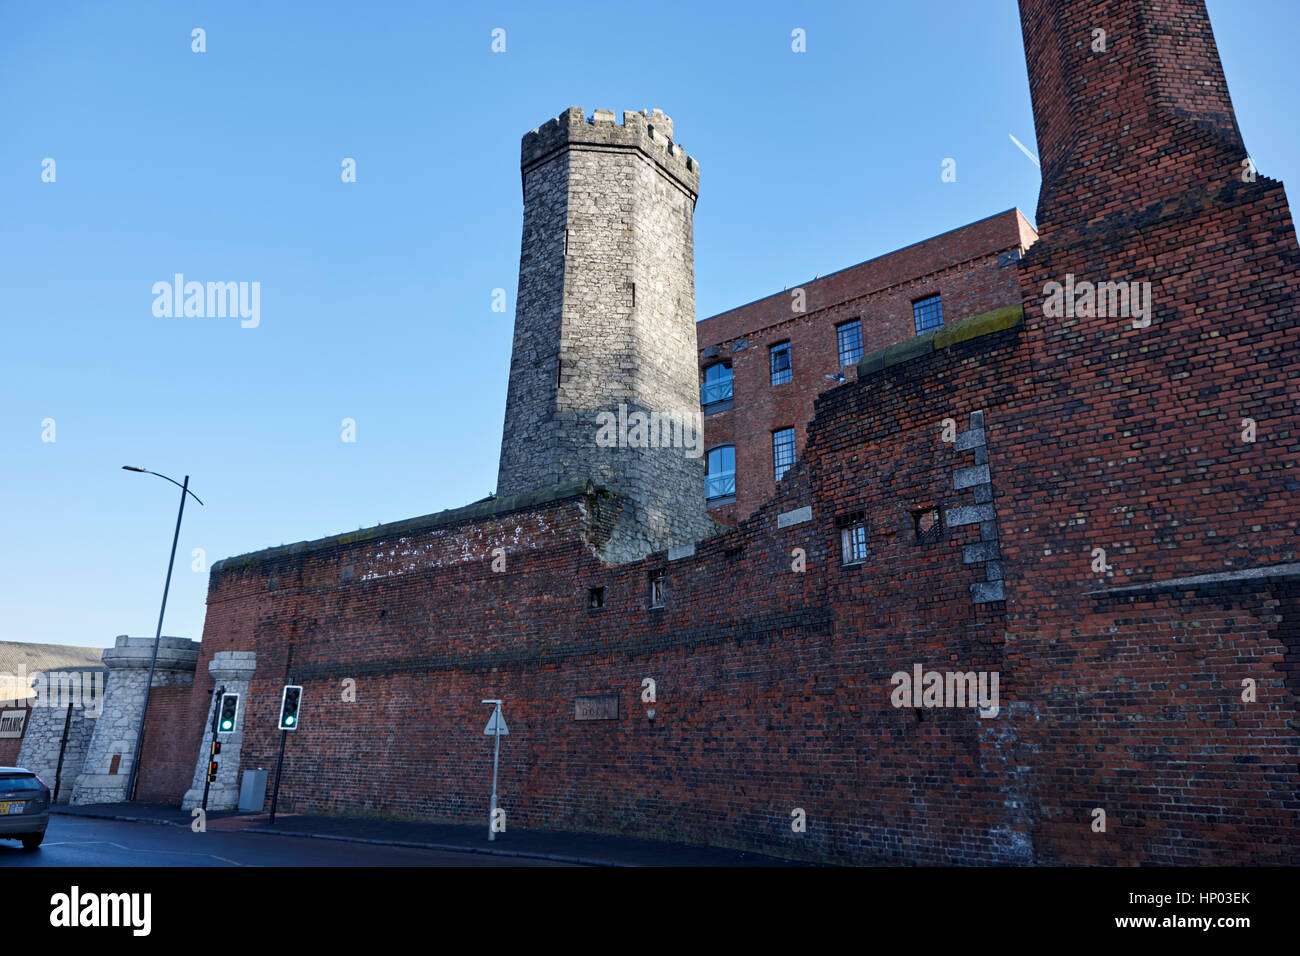 stanley dock red brick walls and granite tower at titanic hotel liverpool uk Stock Photo